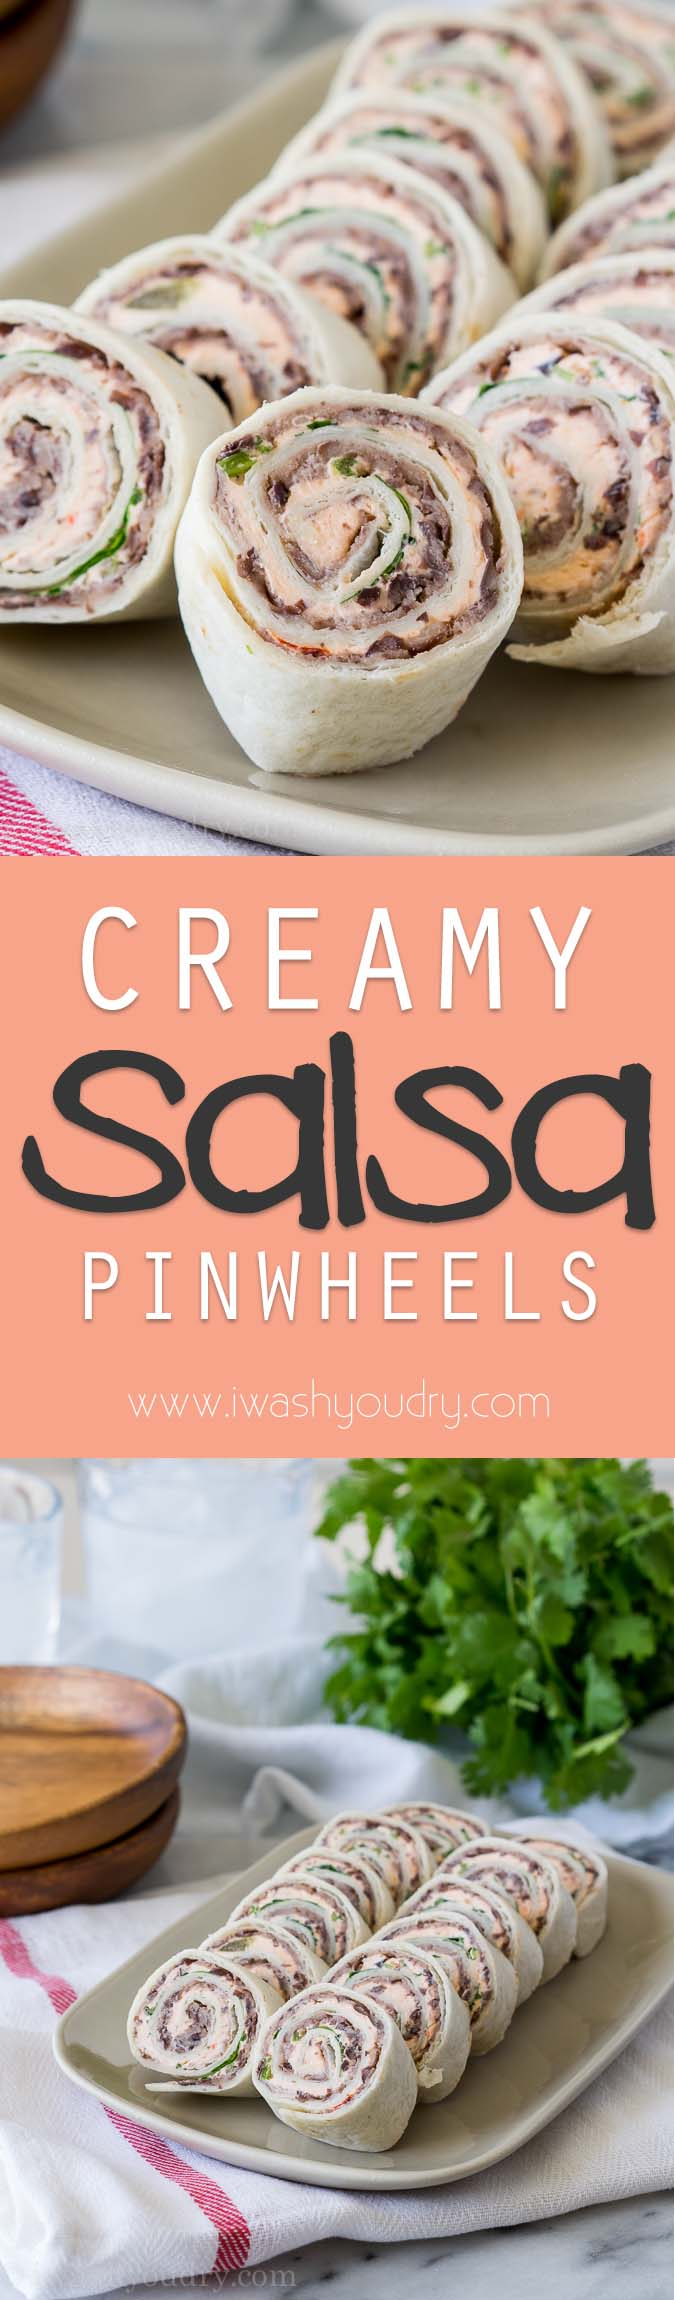 Super easy 4 ingredient Creamy Salsa Pinwheels!